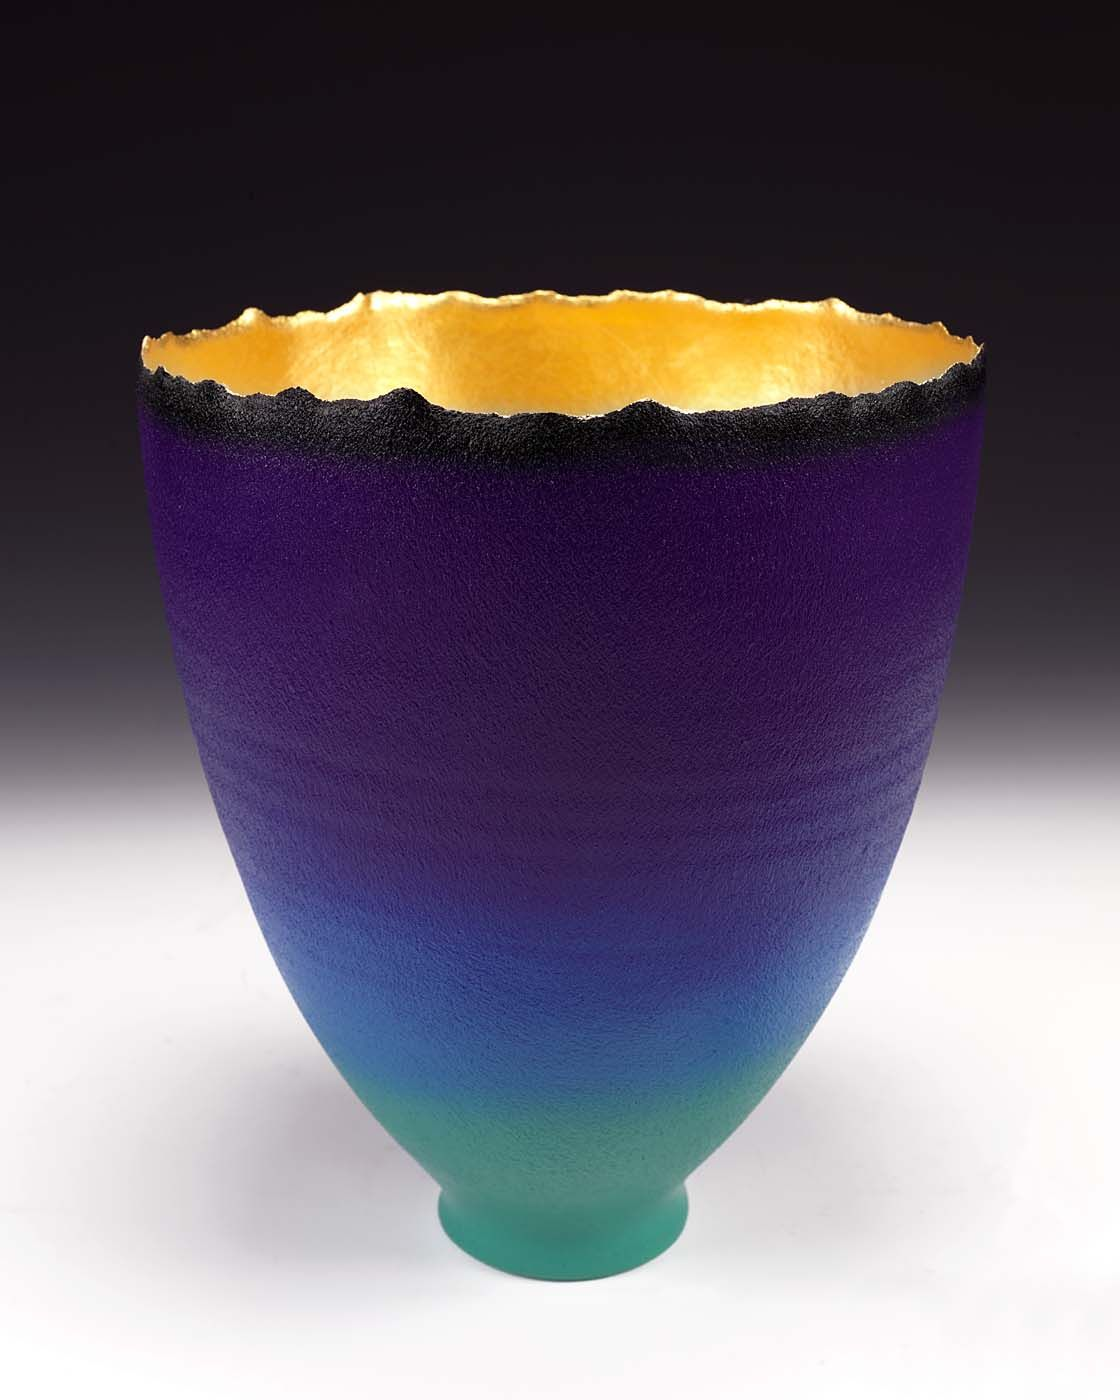 Untitled From The Prosperity Bowl Series By Cheryl Williams American Art Pottery Art Ceramic Artwork Ceramic Sculpture